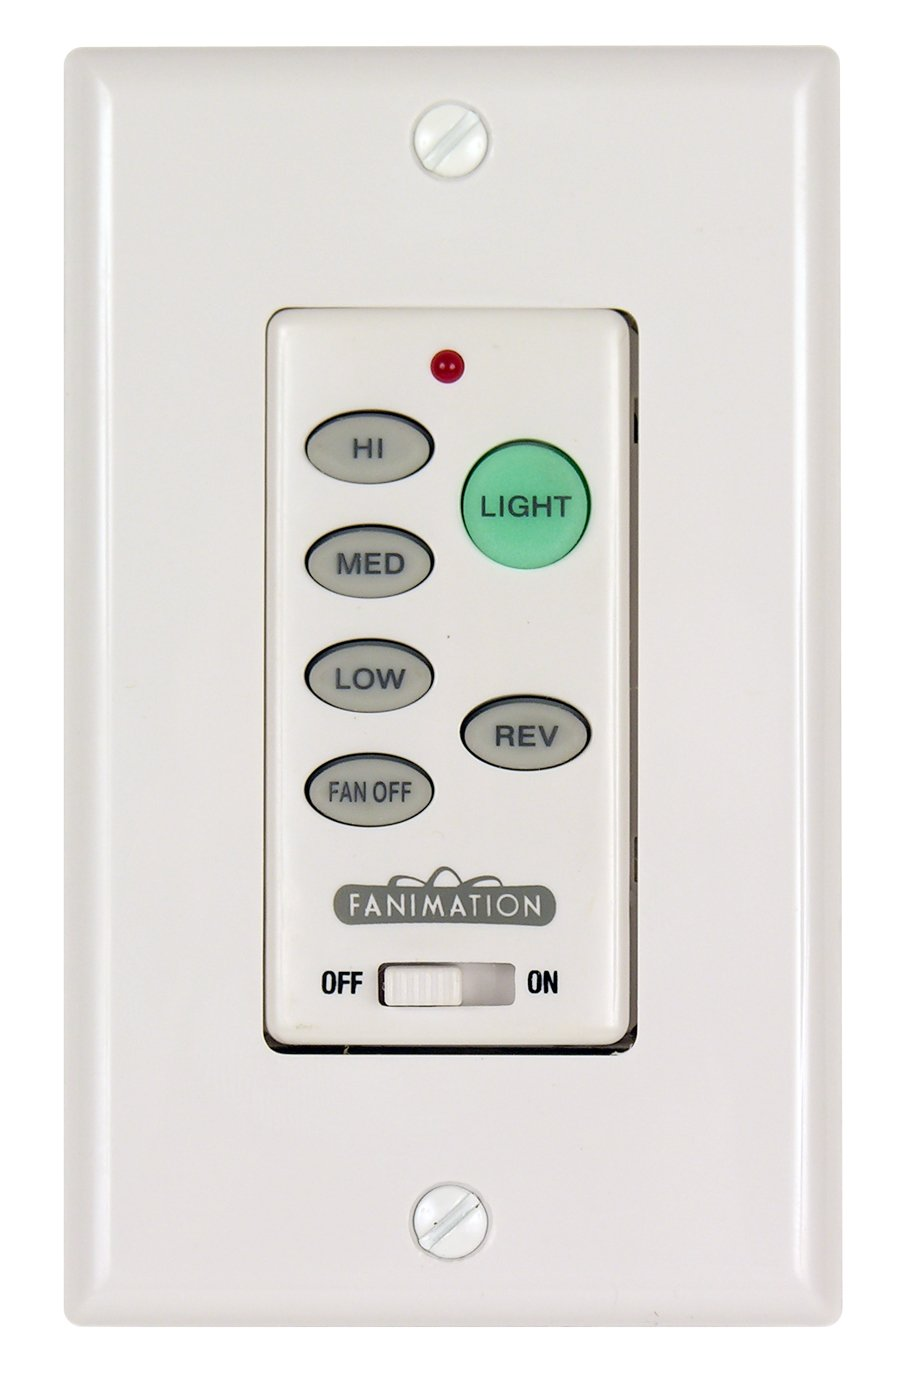 Fanimation C21 Ceiling Fan Wall and Light Remote Control, Reversing, Fan  Speed and Light, White - Ceiling Fan Remote Controls - Amazon.com